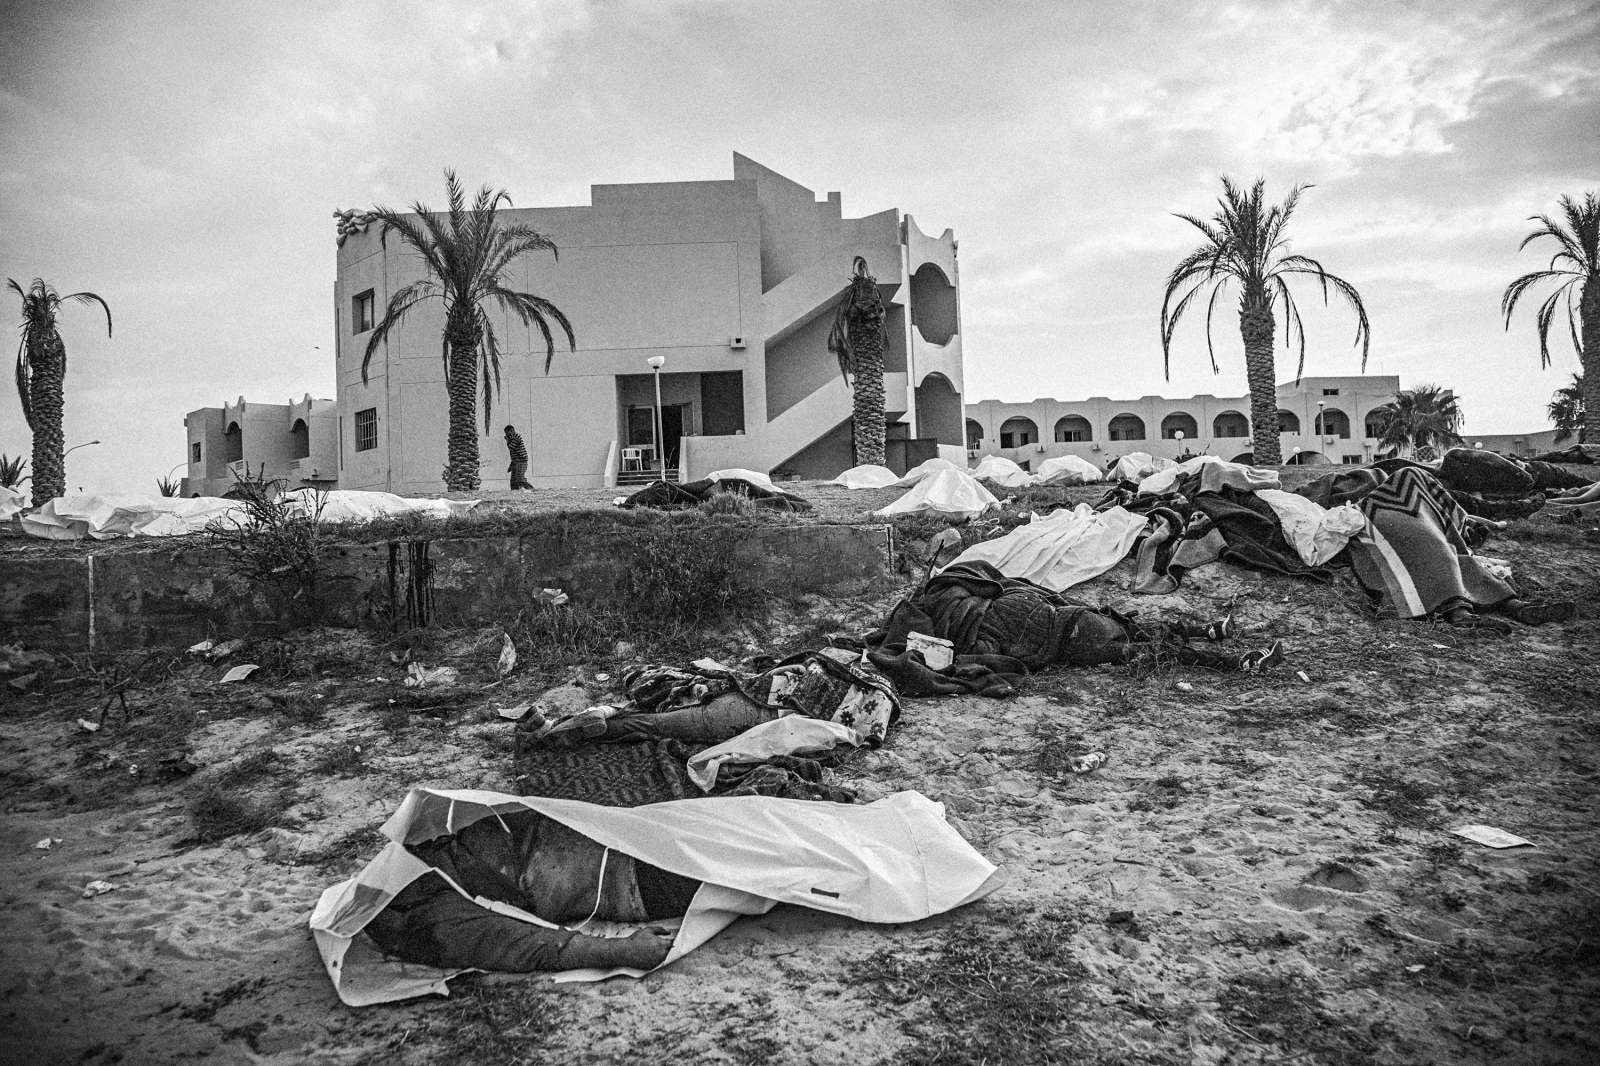 Bodies lay on the front lawn and beach of the Mahari Hotel, where 53 bodies were found following the battle for Sirte, Libya, on October 23, 2011. Most of the bodies had been there for at least several days, some with hands bound behind their backs in an apparent mass execution of supposed Gaddafi loyalists by rebel fighters.